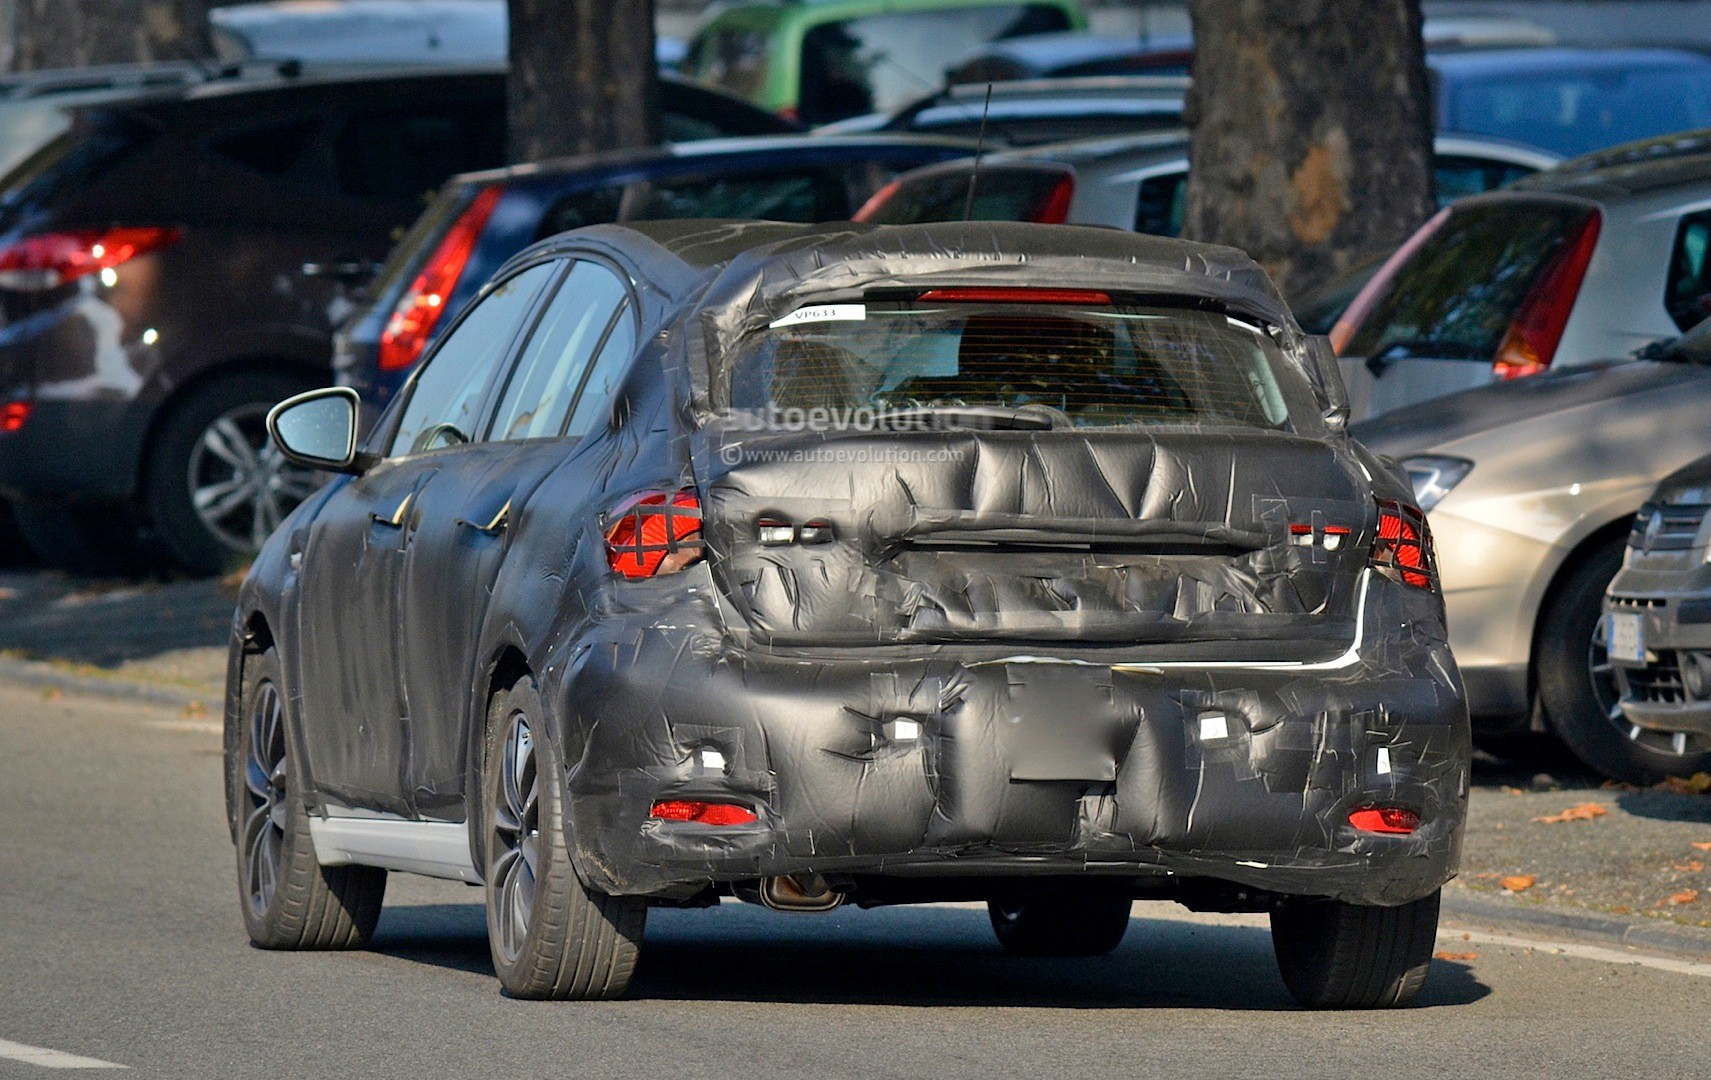 2016 Fiat Tipo Hatchback First Spy Photos Show Future Golf Rival - autoevolution